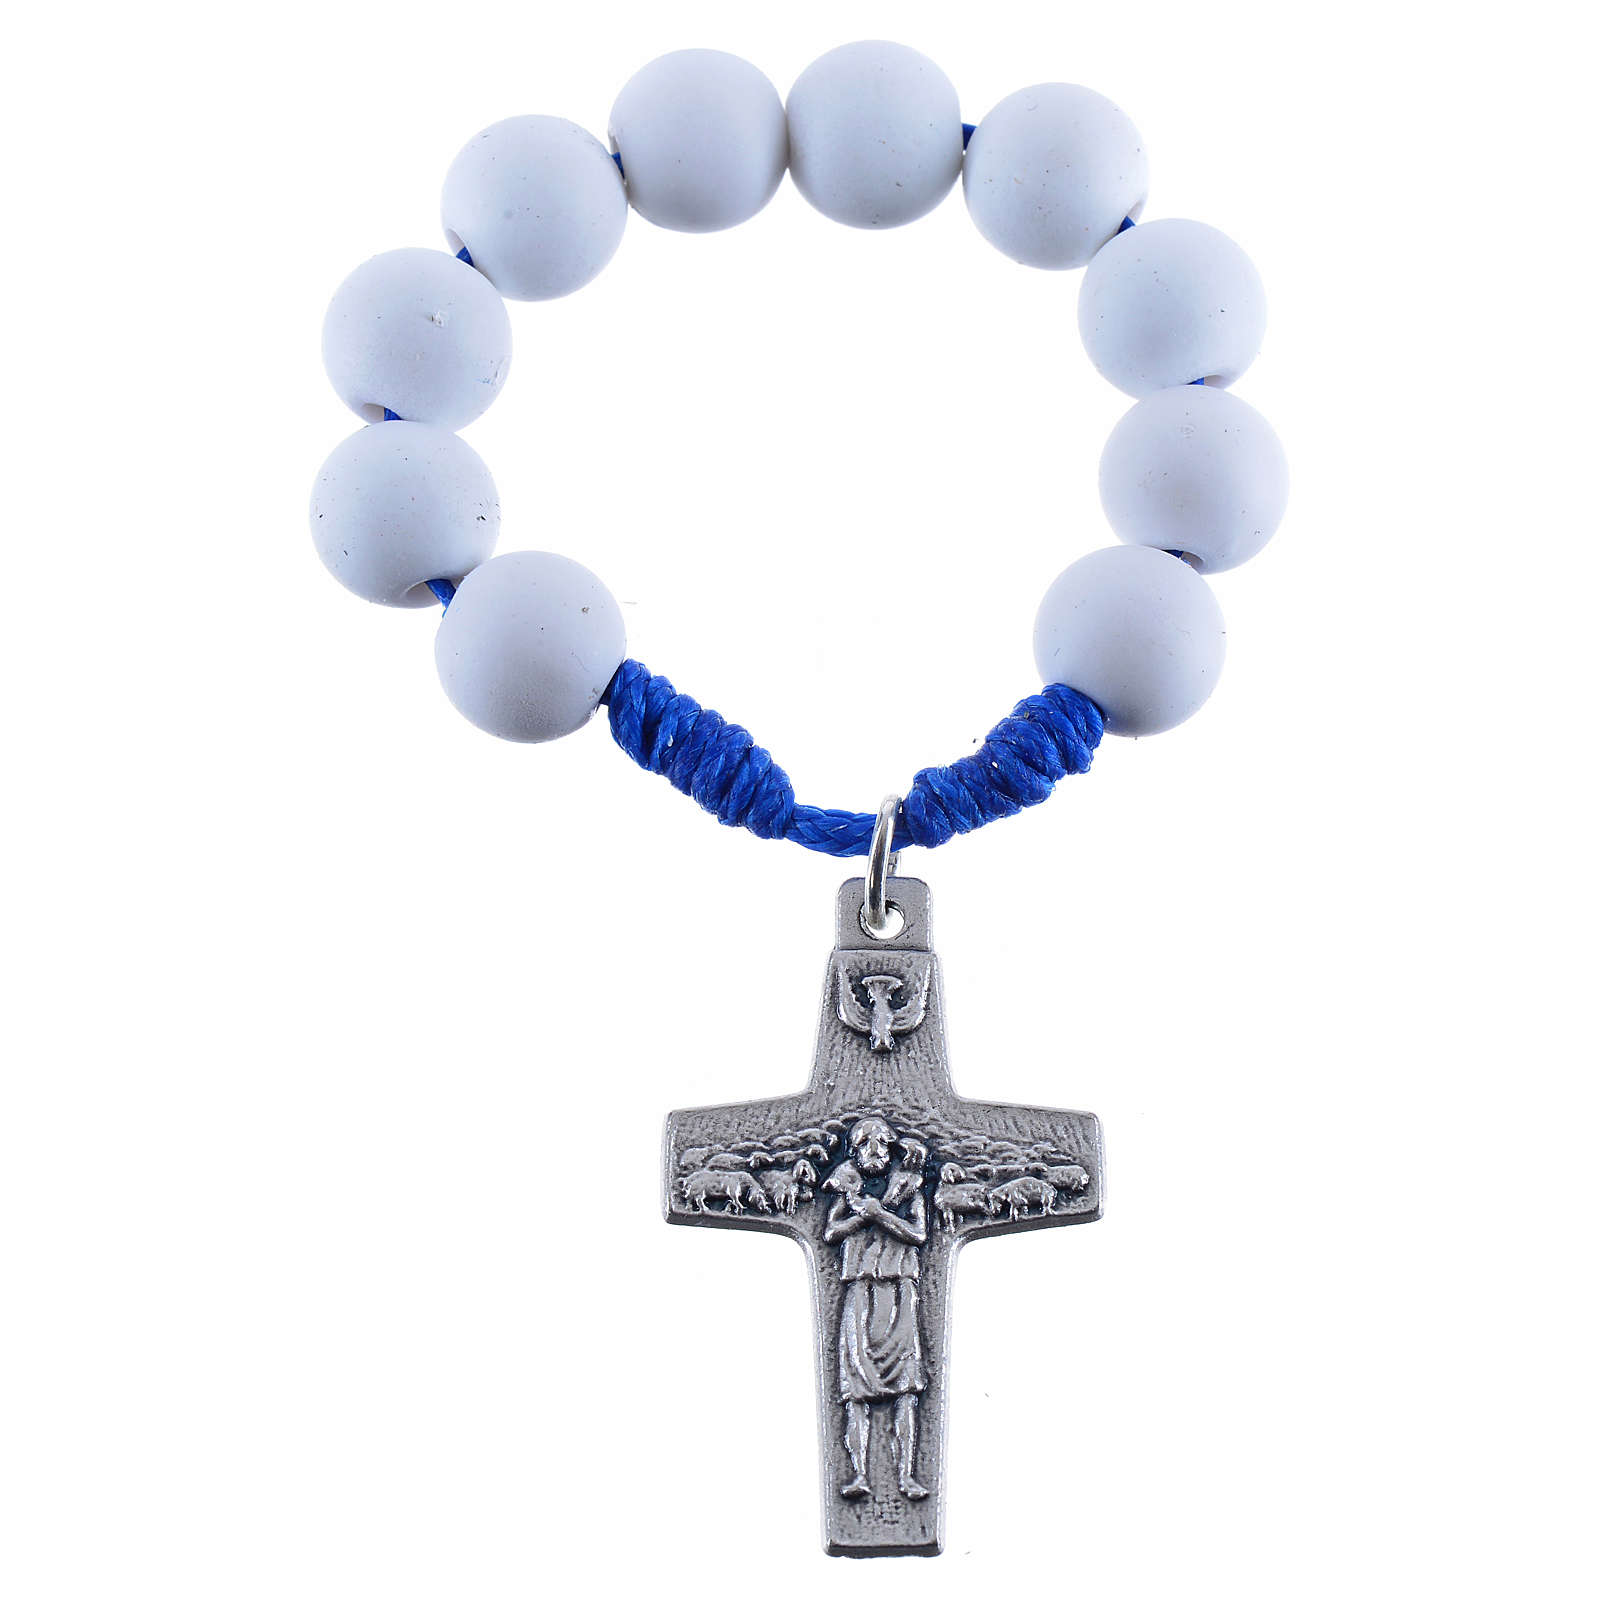 Single decade rosary beads in white fimo, Pope Francis 4